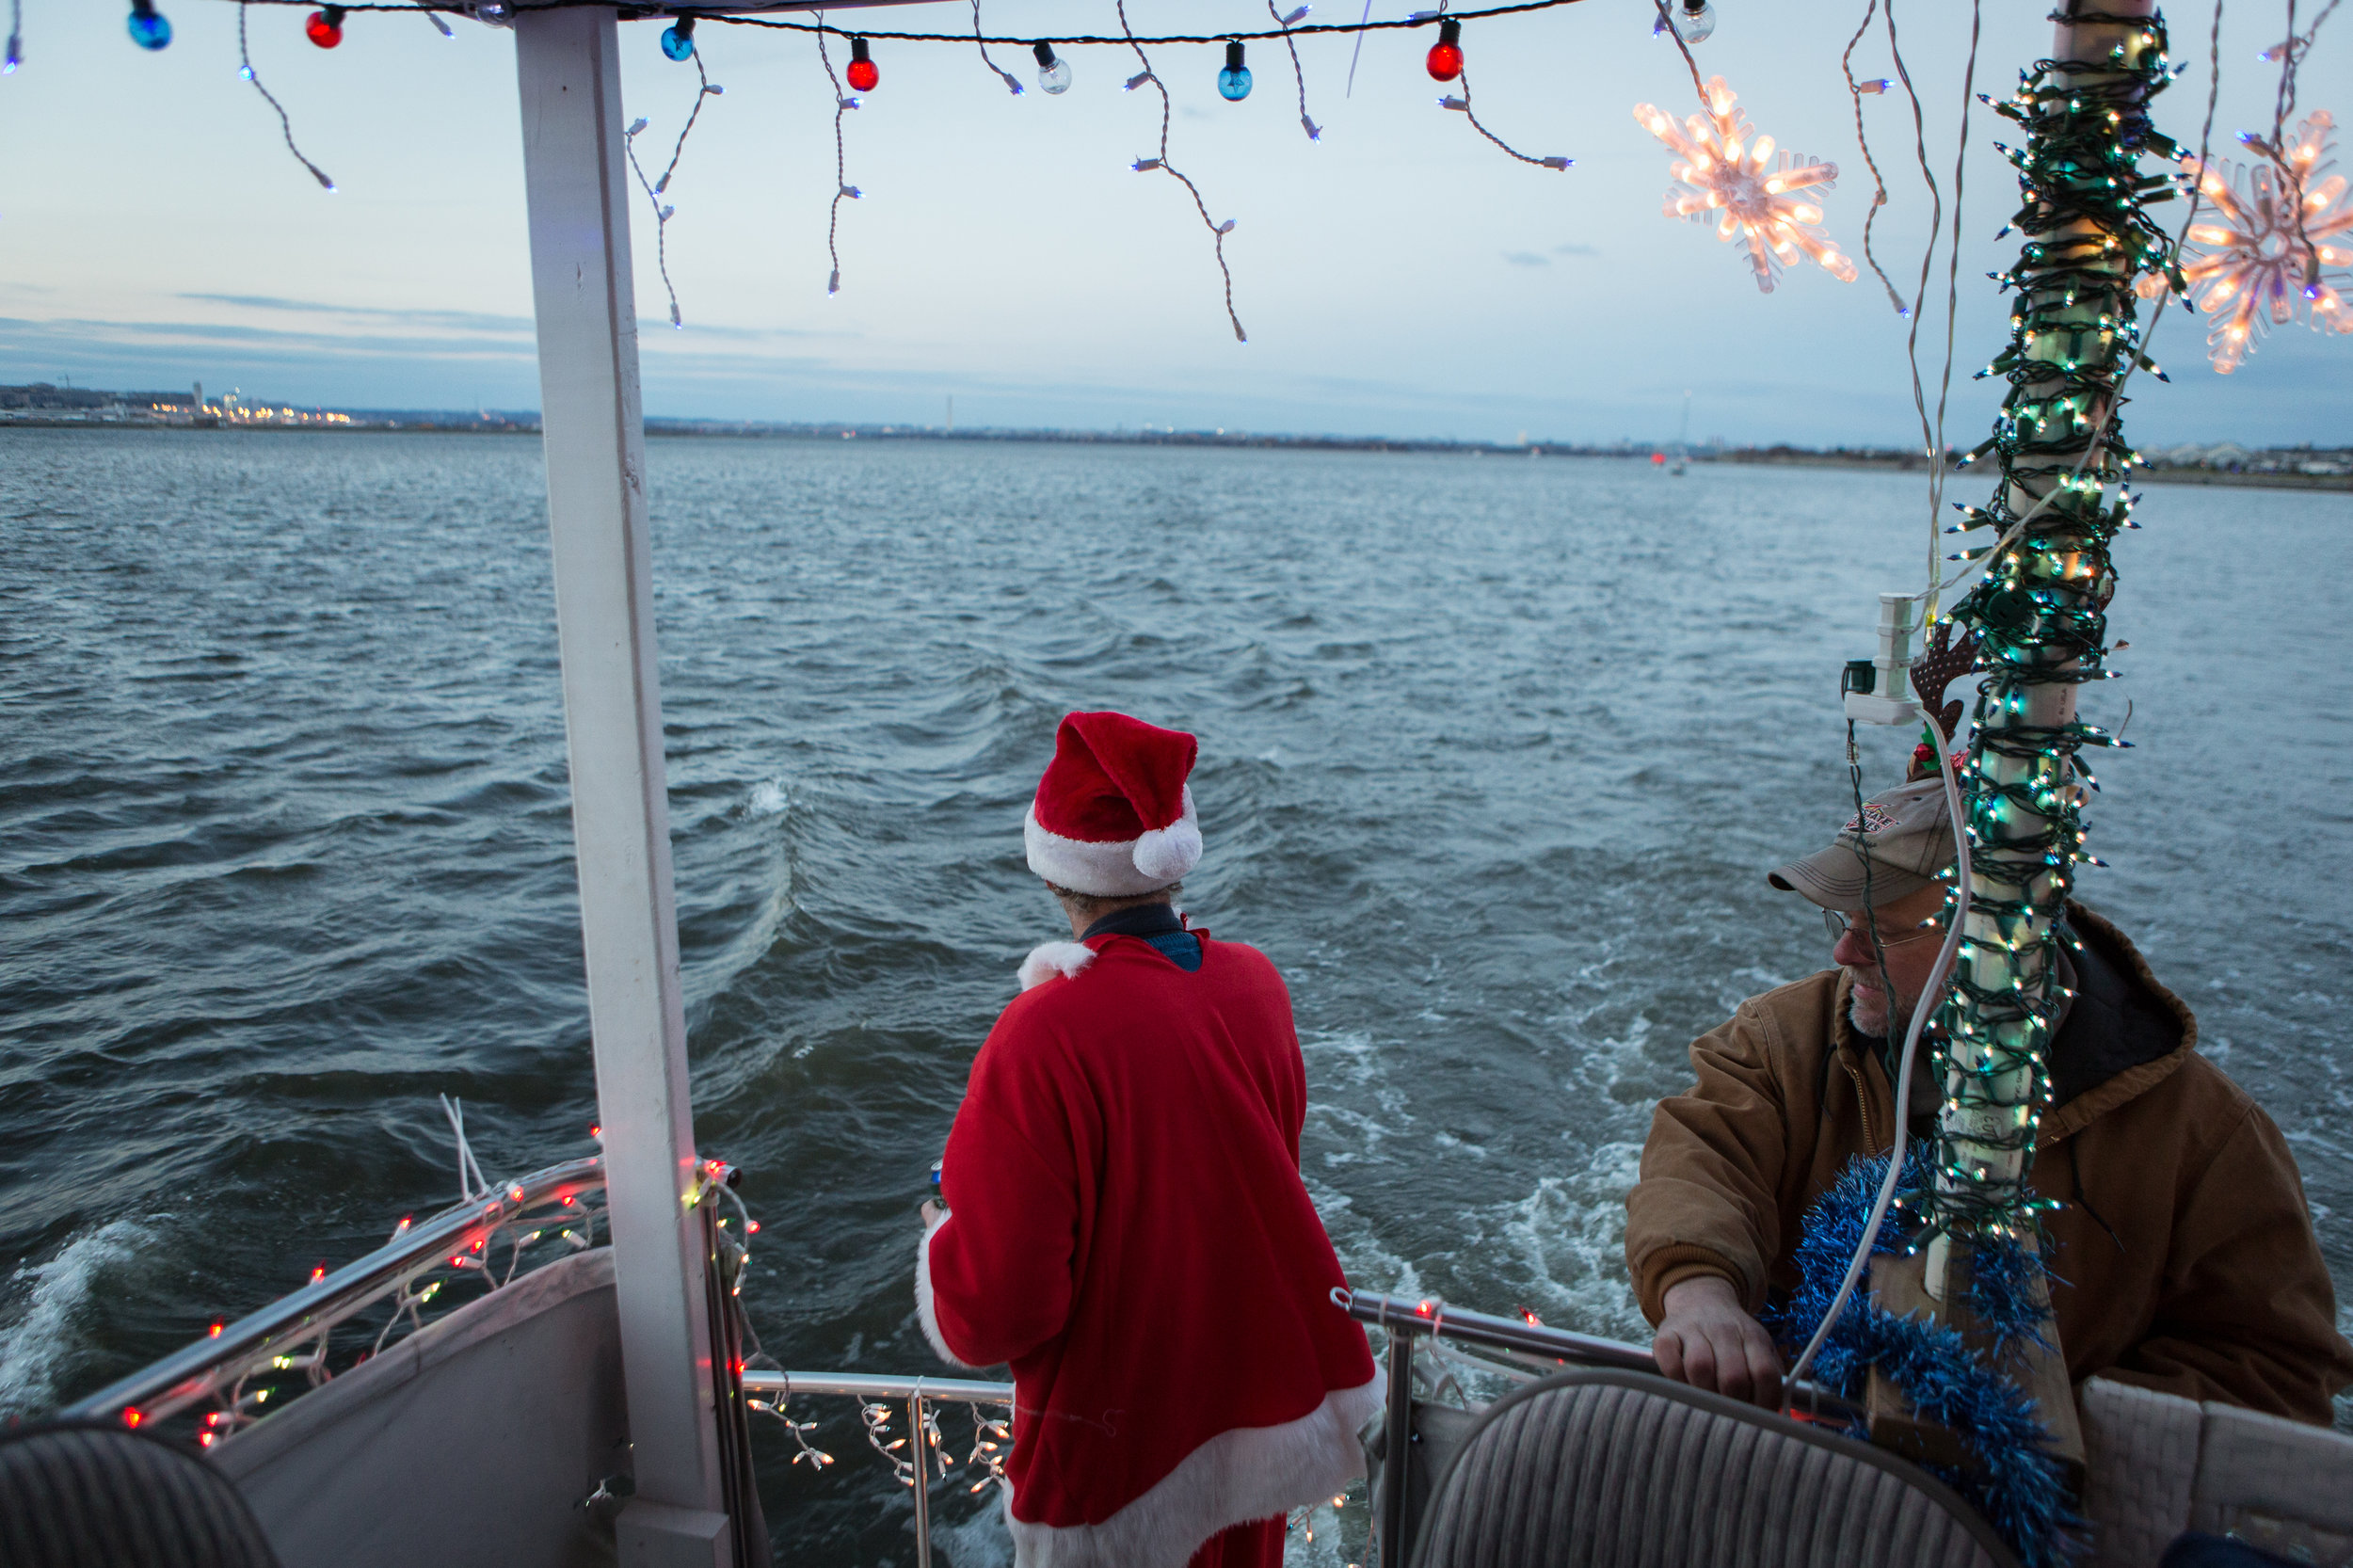 Greg Drenter, the commodore of the Eastern Power Boat Club, which is situated on the Anacostia River, rides in the parade of lights, an annual boat decorating competition.